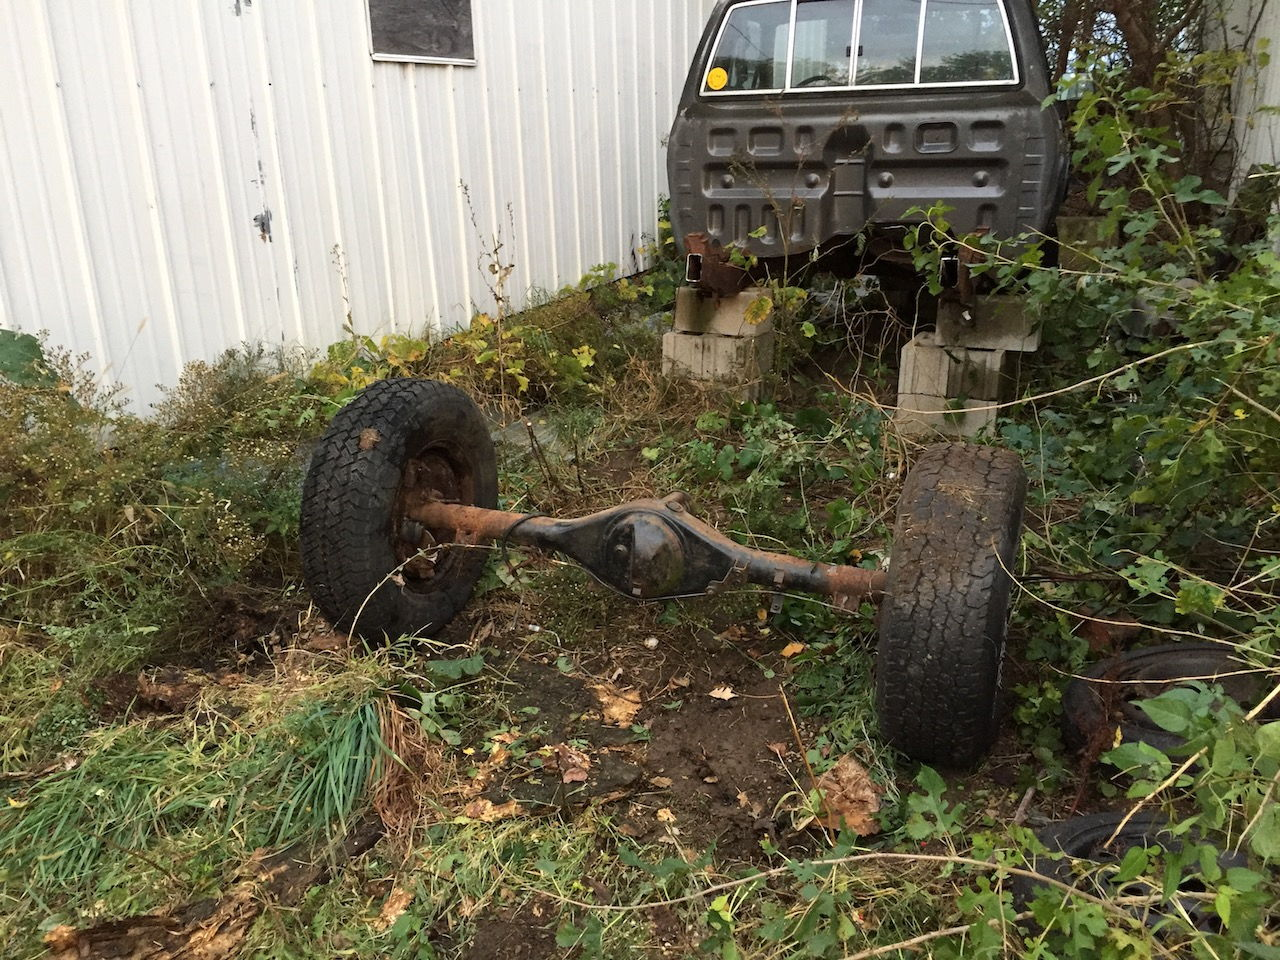 1993 Toyota Pickup No Start 22re Yotatech Forums 1987 4runner Sr5 Efi Wiring Diagram The Floor And Front Of Foot Well Just Below To Left Clutch Pedal Is Rusted Out I Could Kick A Hole Through It That Would Probably